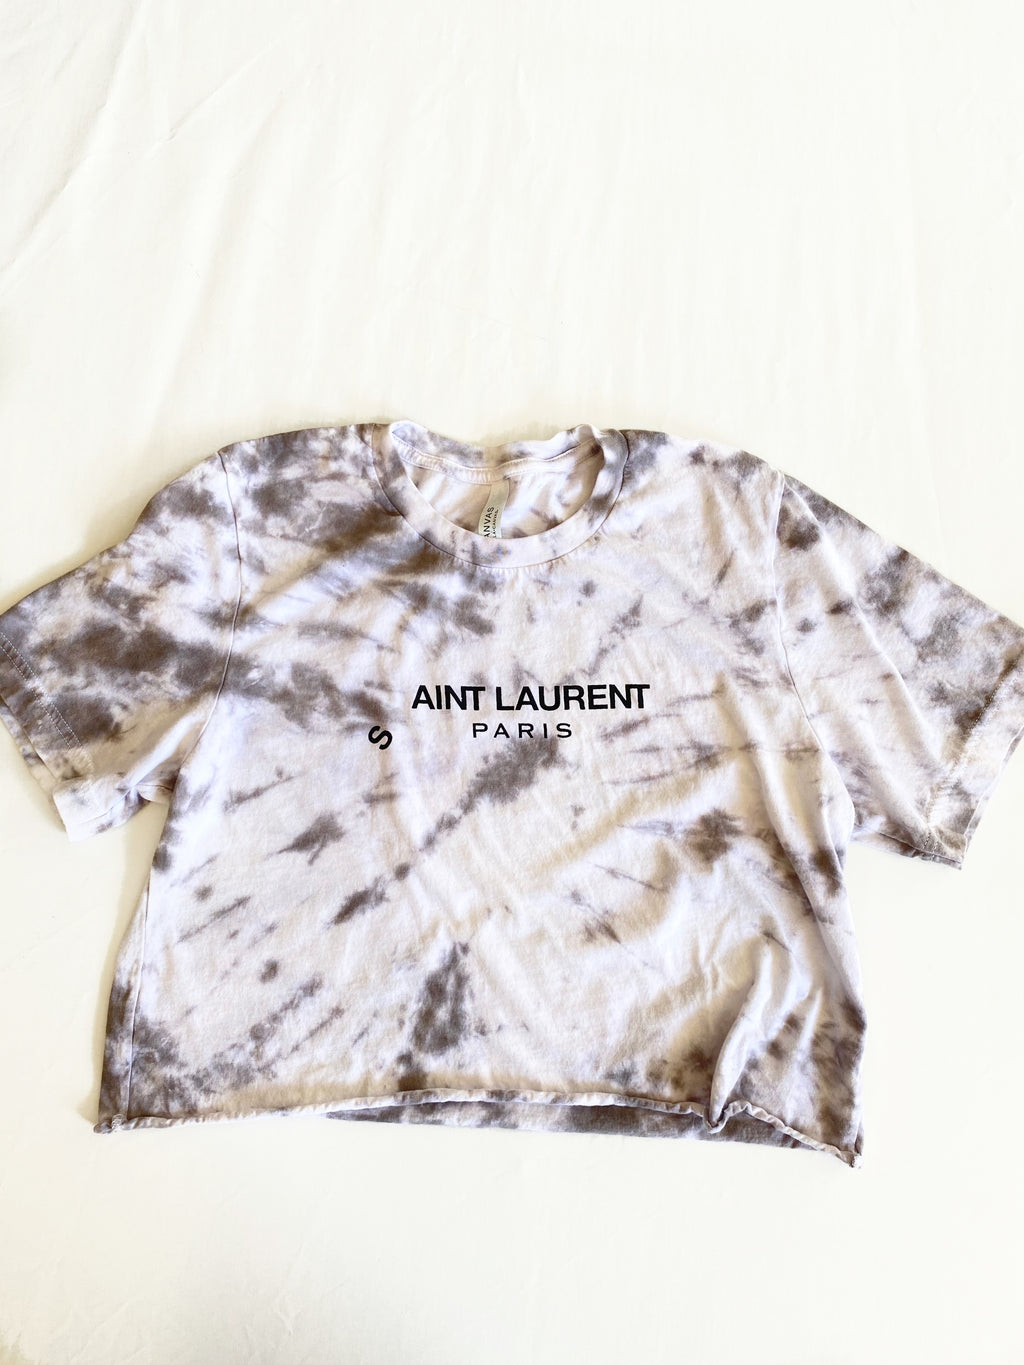 Aint Laurent Tee (White)